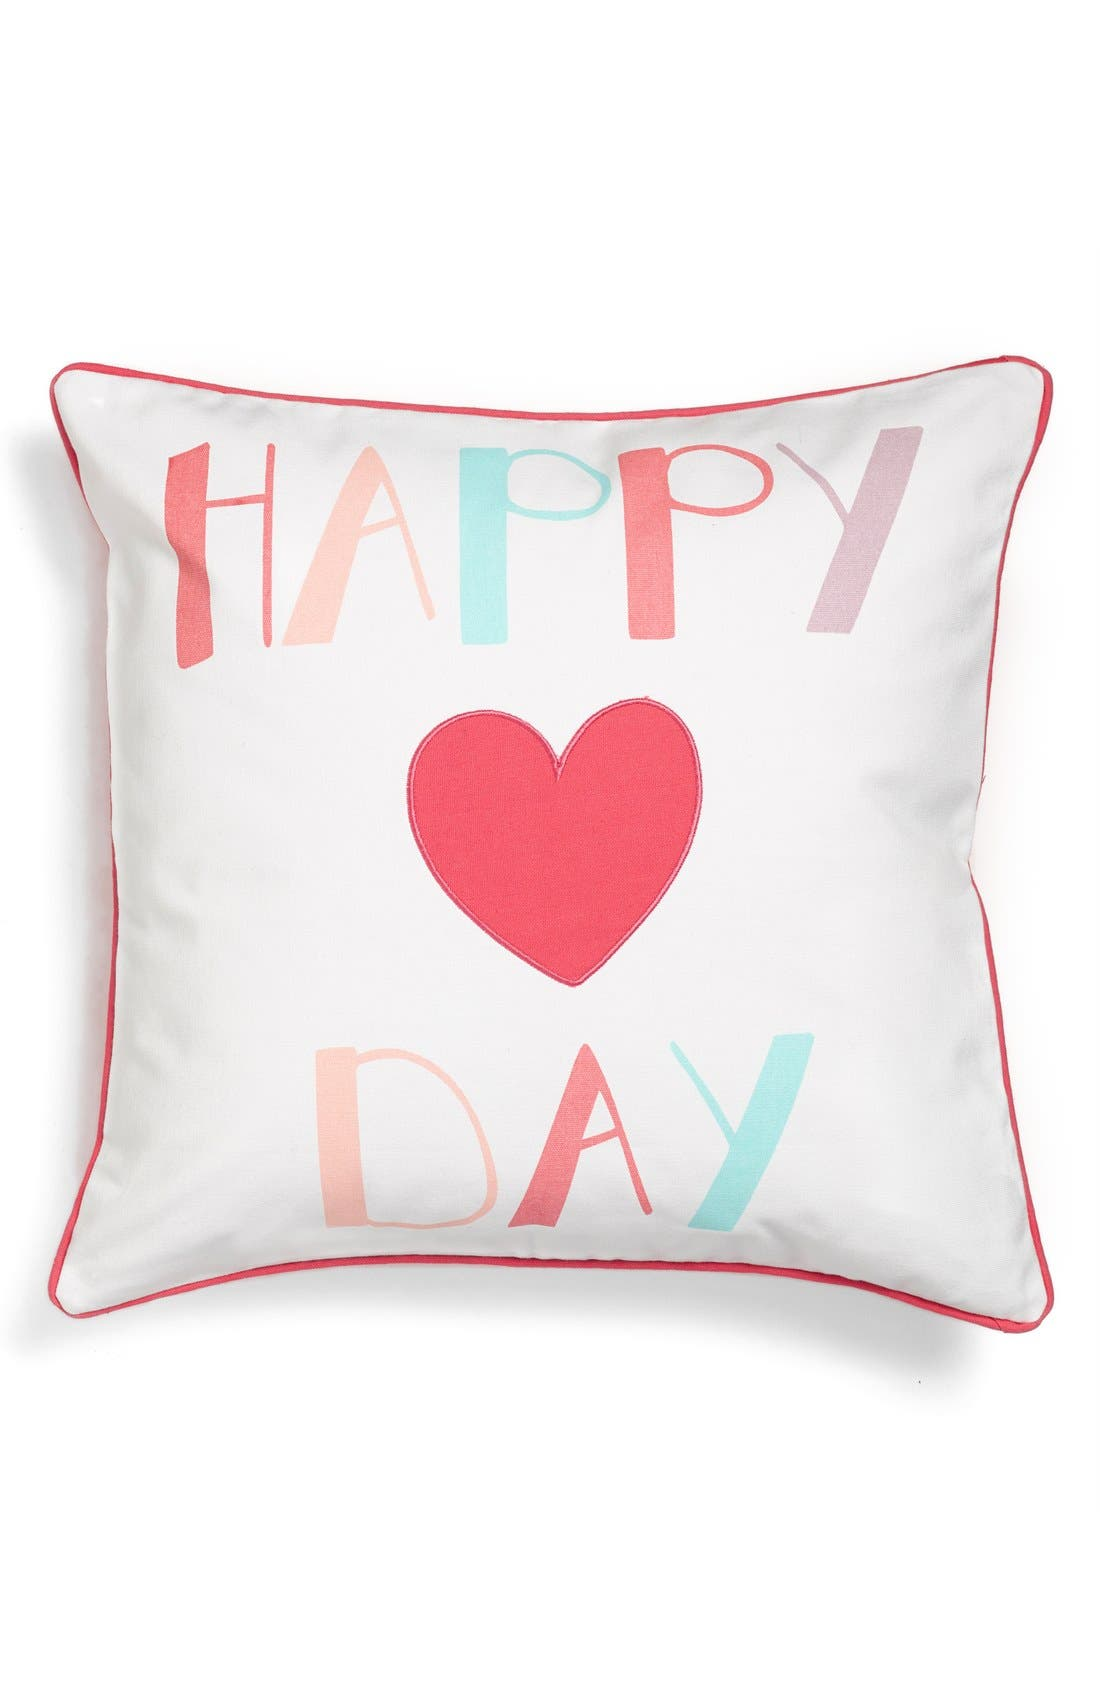 Main Image - Levtex 'Happy Day' Pillow